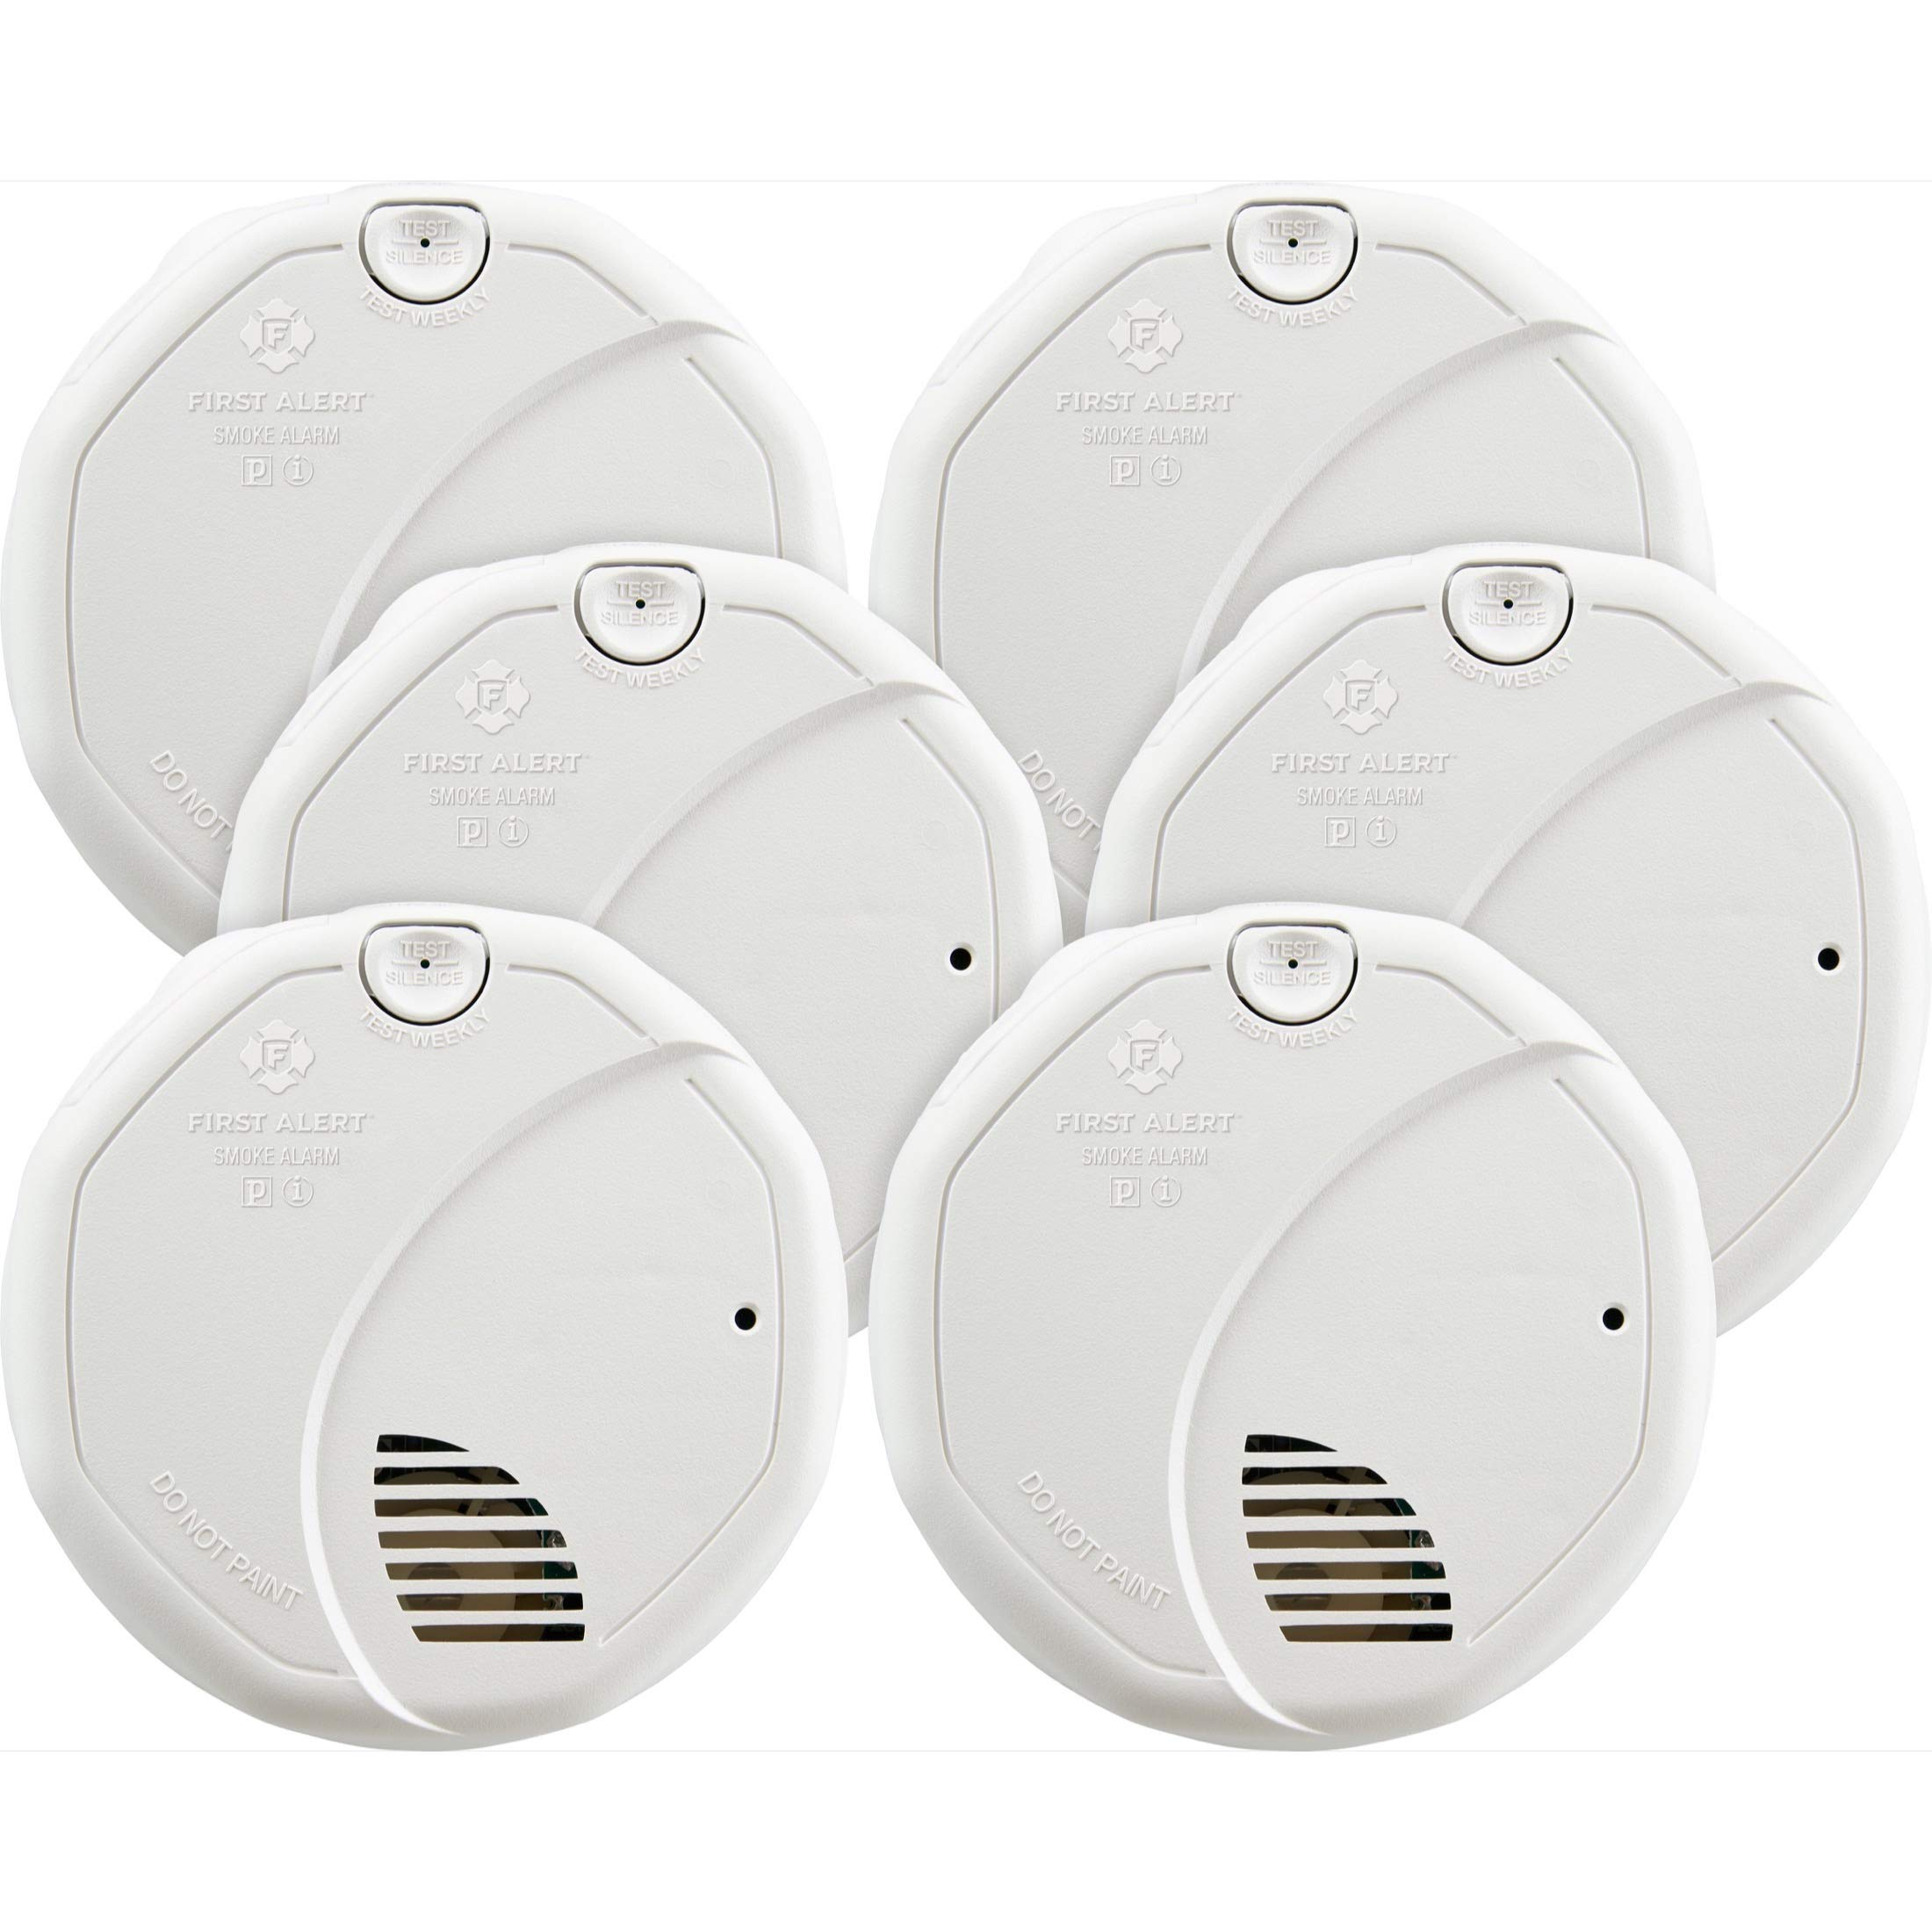 First Alert BRK 3120B-6 Hardwired Smoke Detector with Photoelectric and Ionization with Battery Backup, 6-Pack